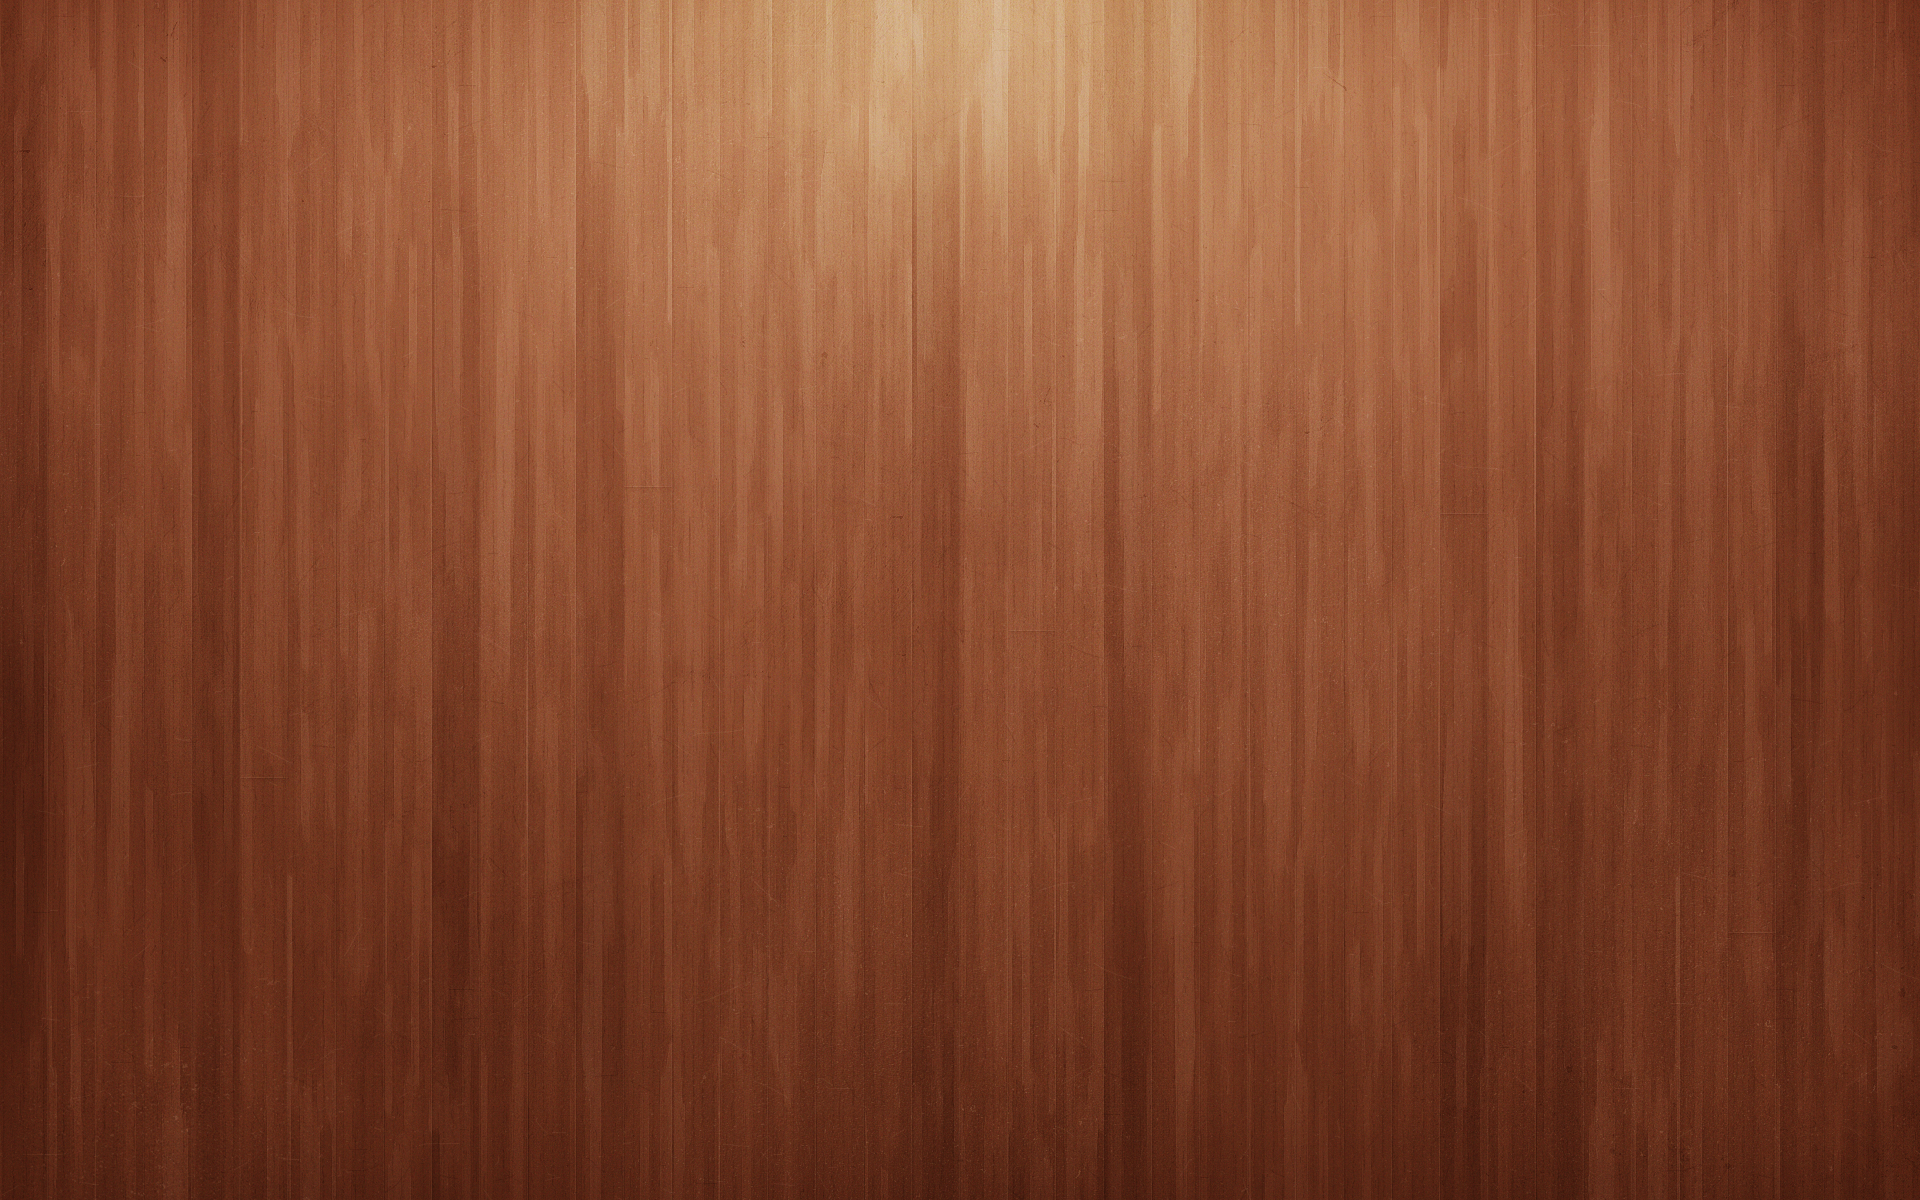 wood background wallpaper 343273